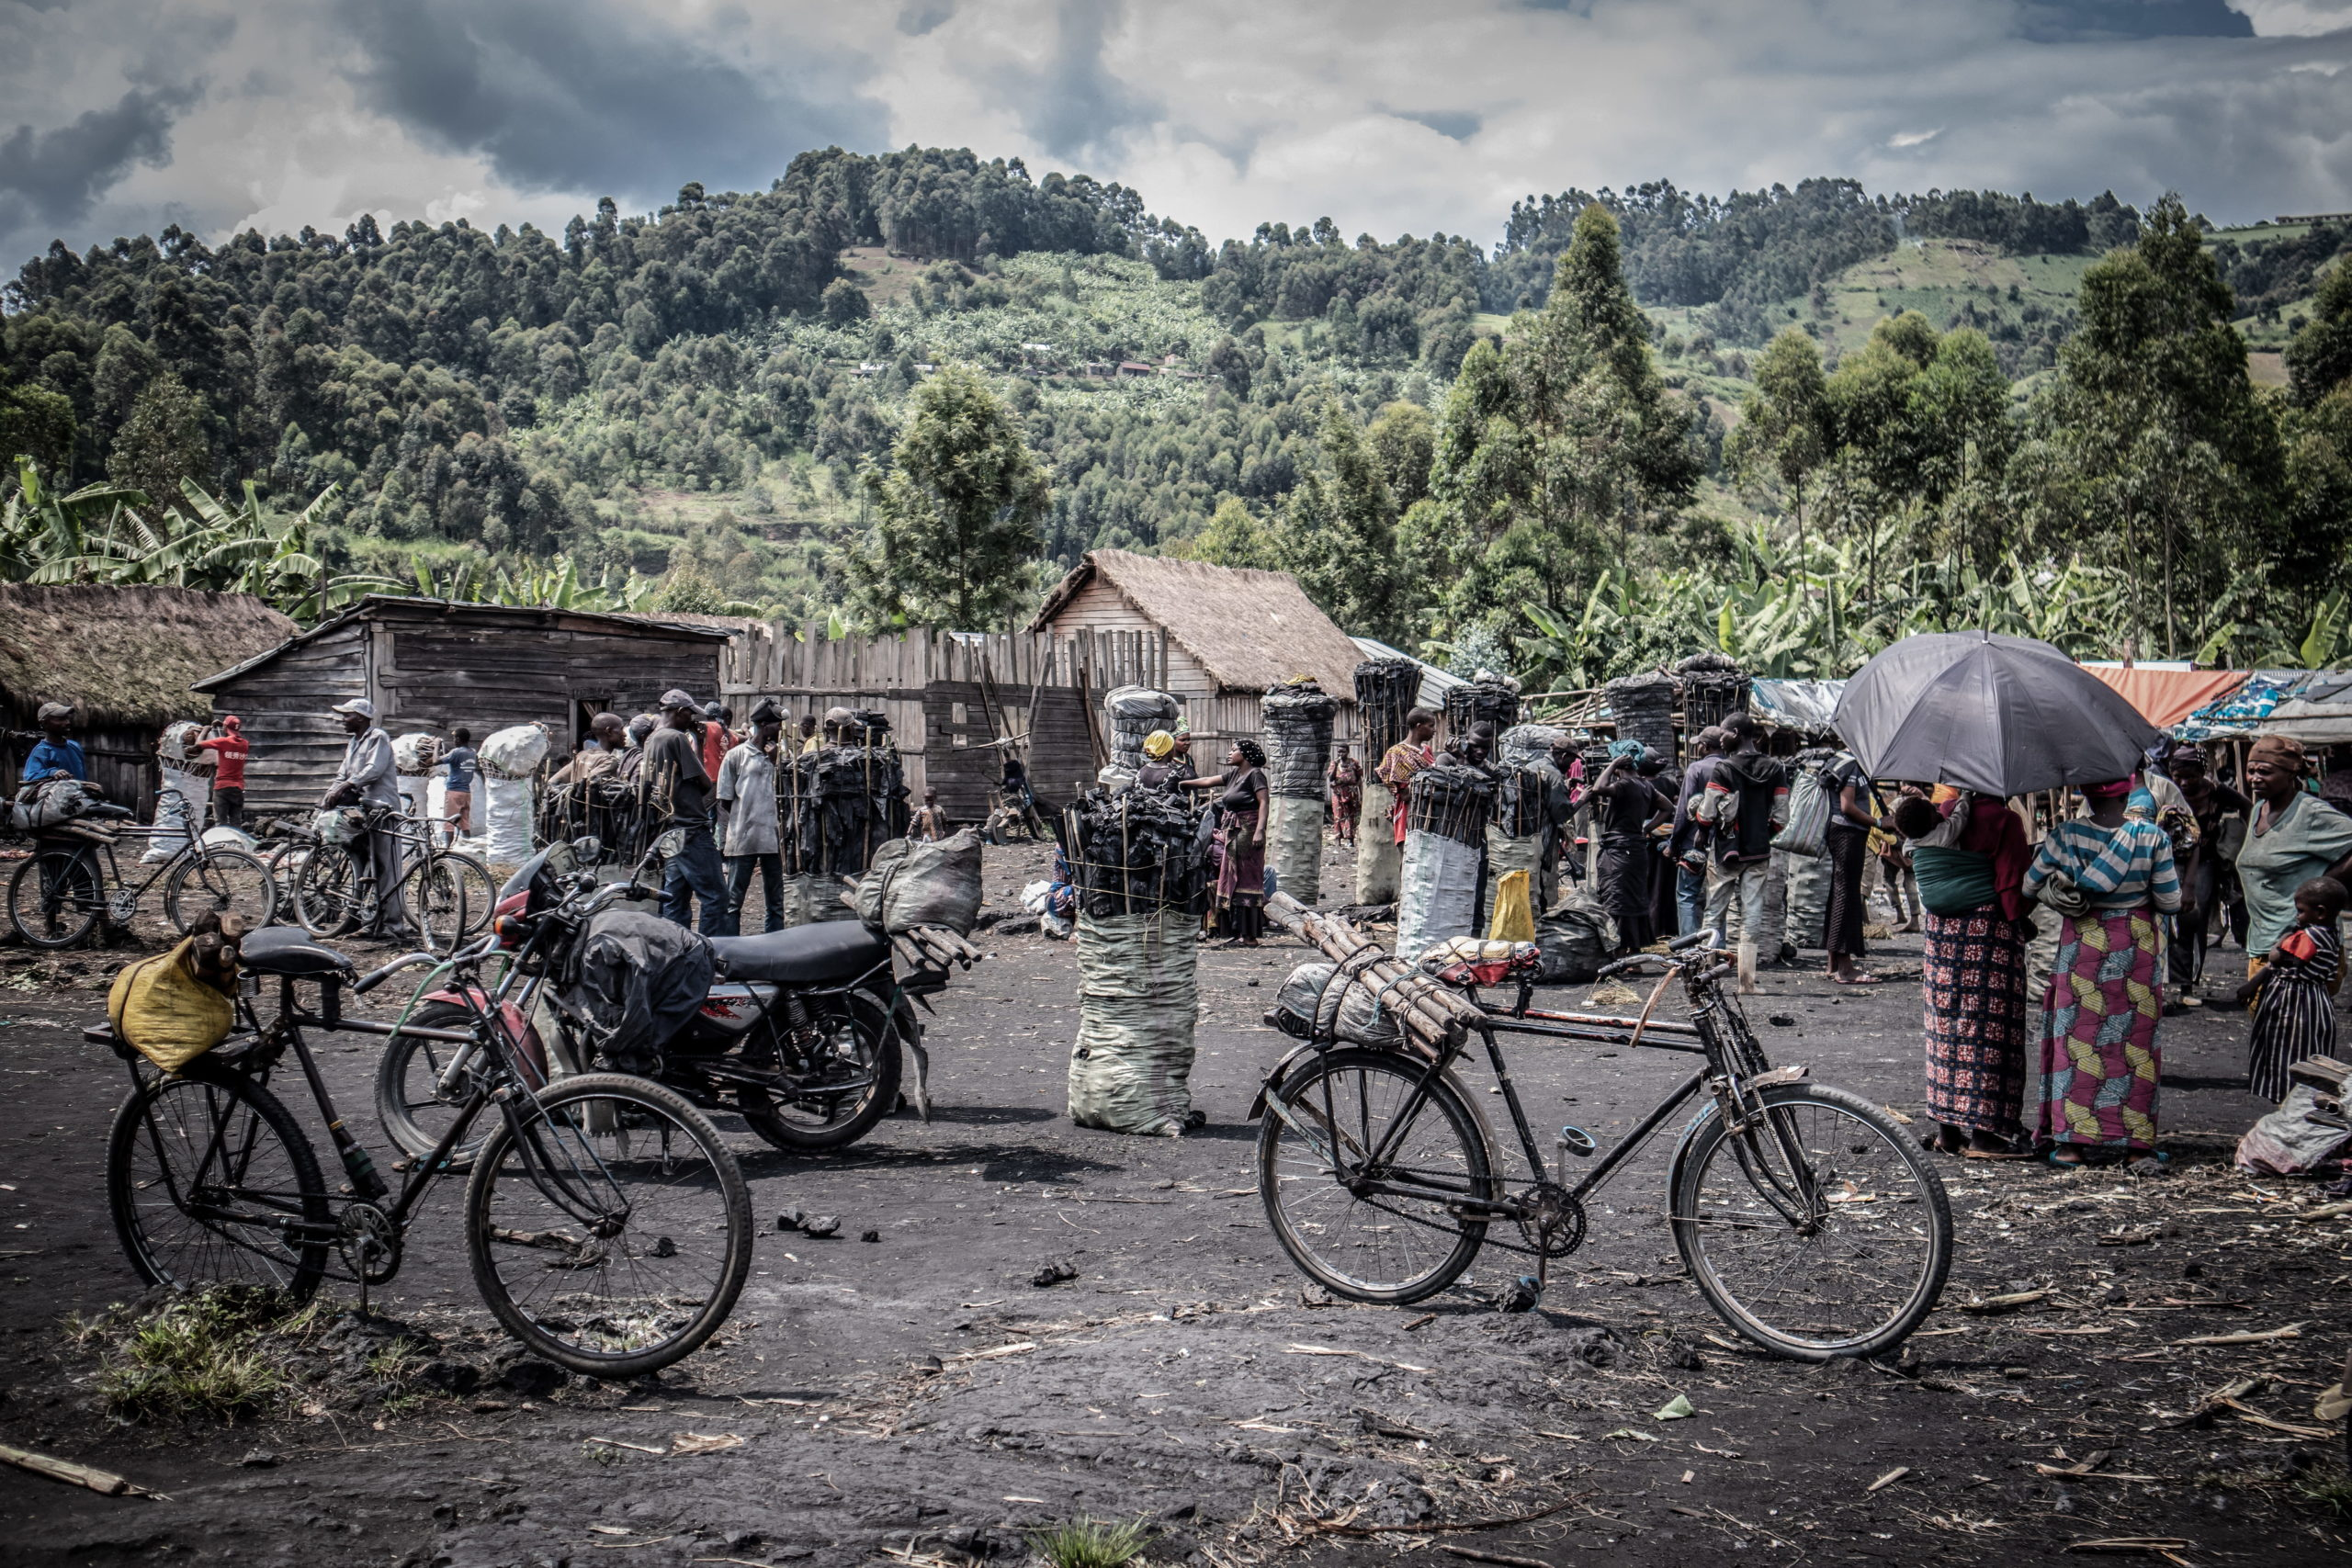 Virunga National Park, DRC, December 2020. The charcoal market of Kulupango on the edge of Virunga National Park just north of the eastern Congolese city of Goma. Most of the charcoal bound for Goma passes through Kulupango market. © Guerchom Ndebo for Fondation Carmignac